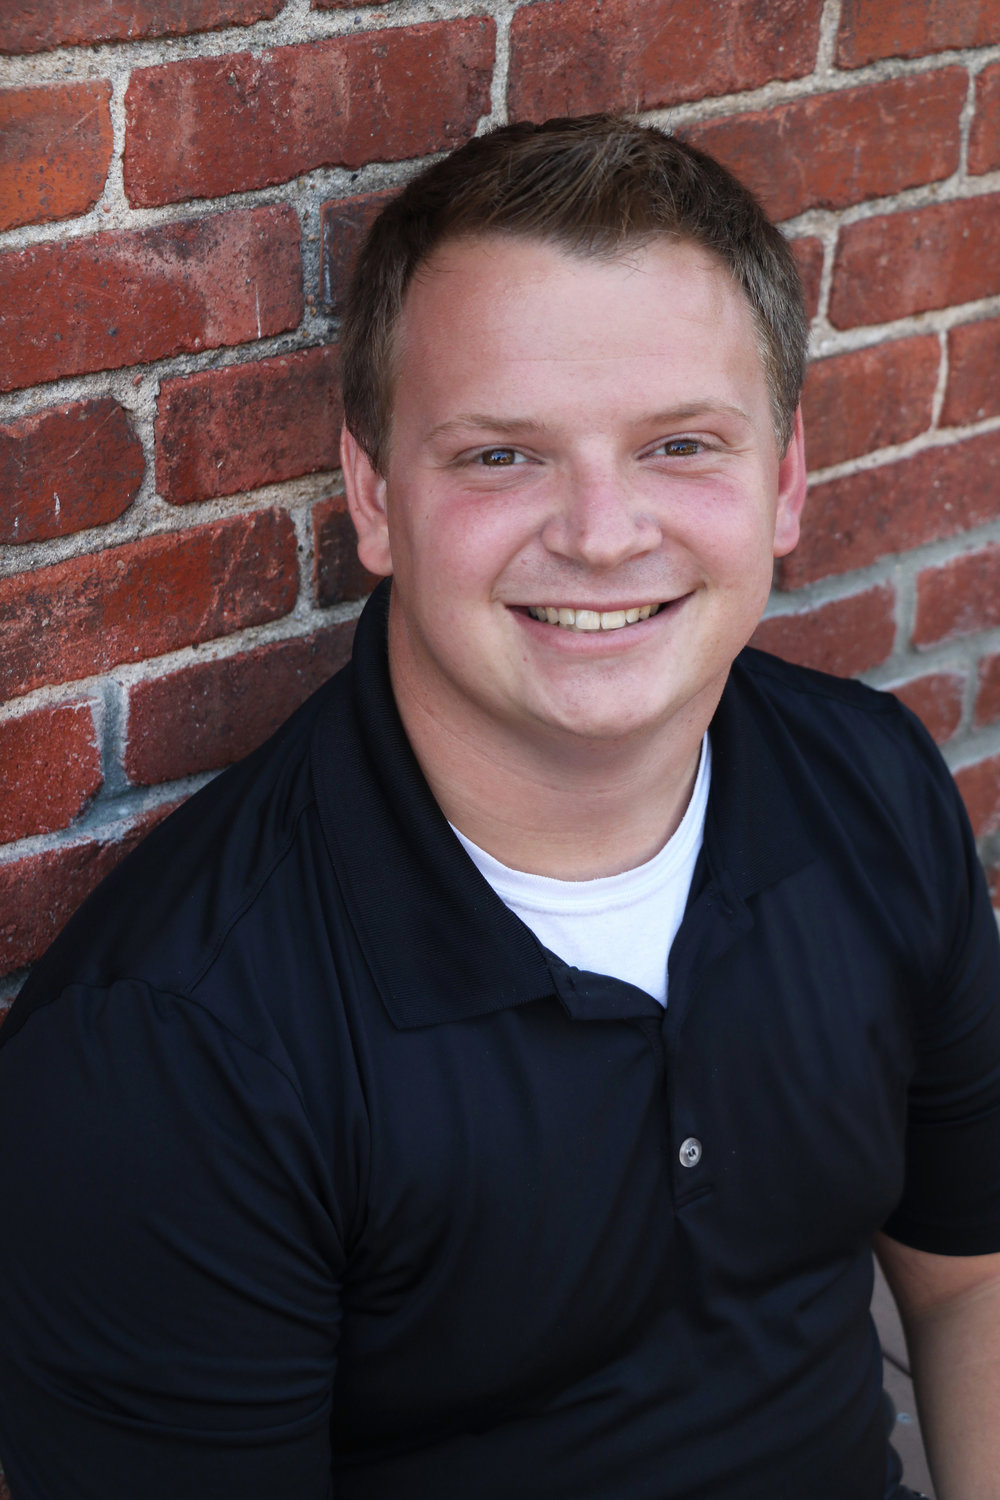 Jesse Elpers  - WAM Coordinator, Worship Musician, Event Planning, Development, Lighting, Audio Technician